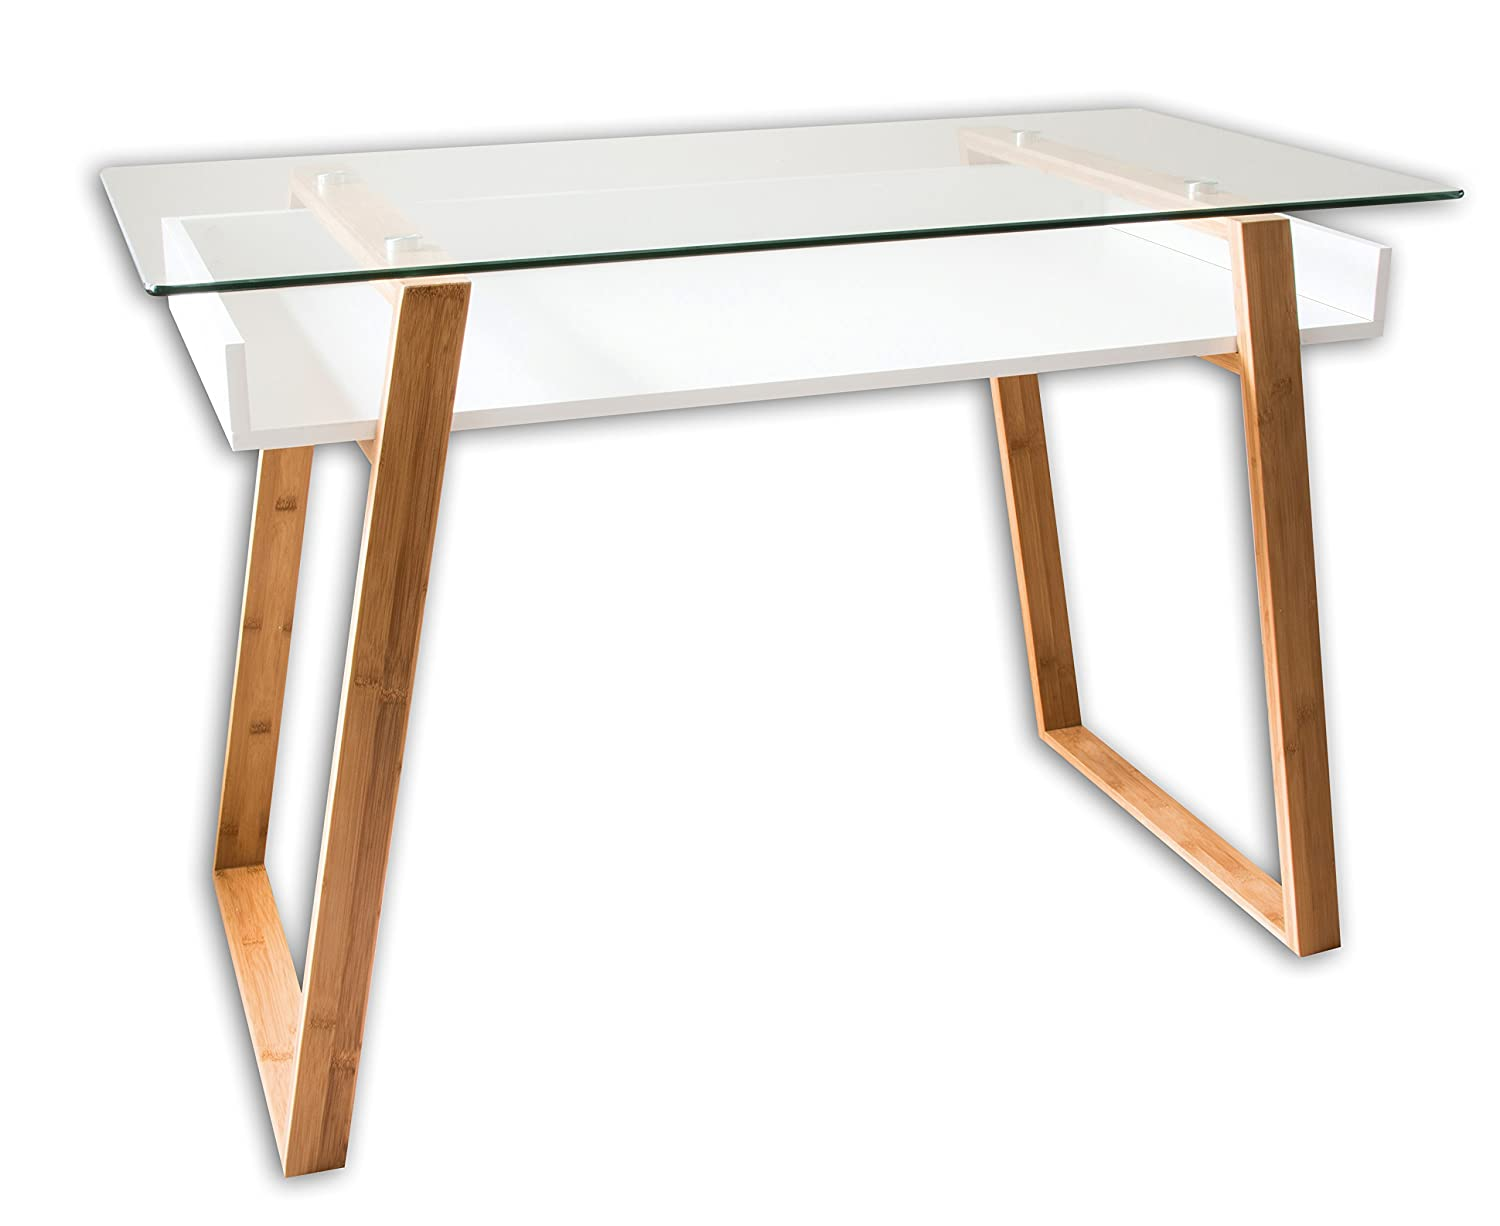 White office table Desk Desk Combining Glass And Wood Modern Desk With Bamboo Legs And White Glazed Shelf Usable As Computer Desk Office Desk Secretary Desk Or Vanity Desk Amazoncom Amazoncom Bonvivo Writing Desk Massimo Contemporary Desk